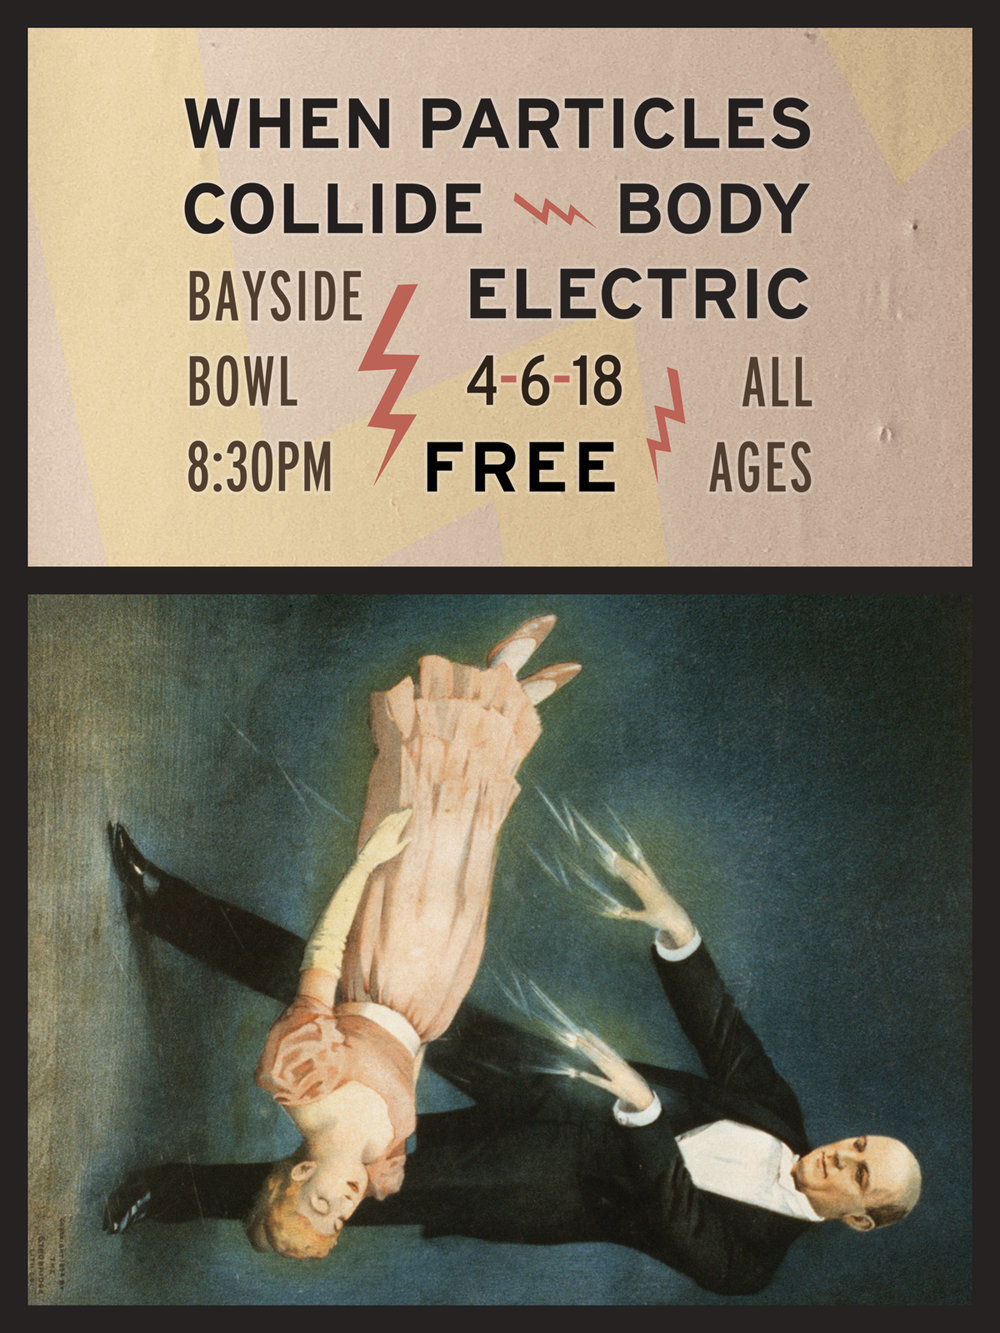 Body Electric (one of Eric's projects) is playing a free, all-ages show Friday, April 6th @ Bayside Bowl.